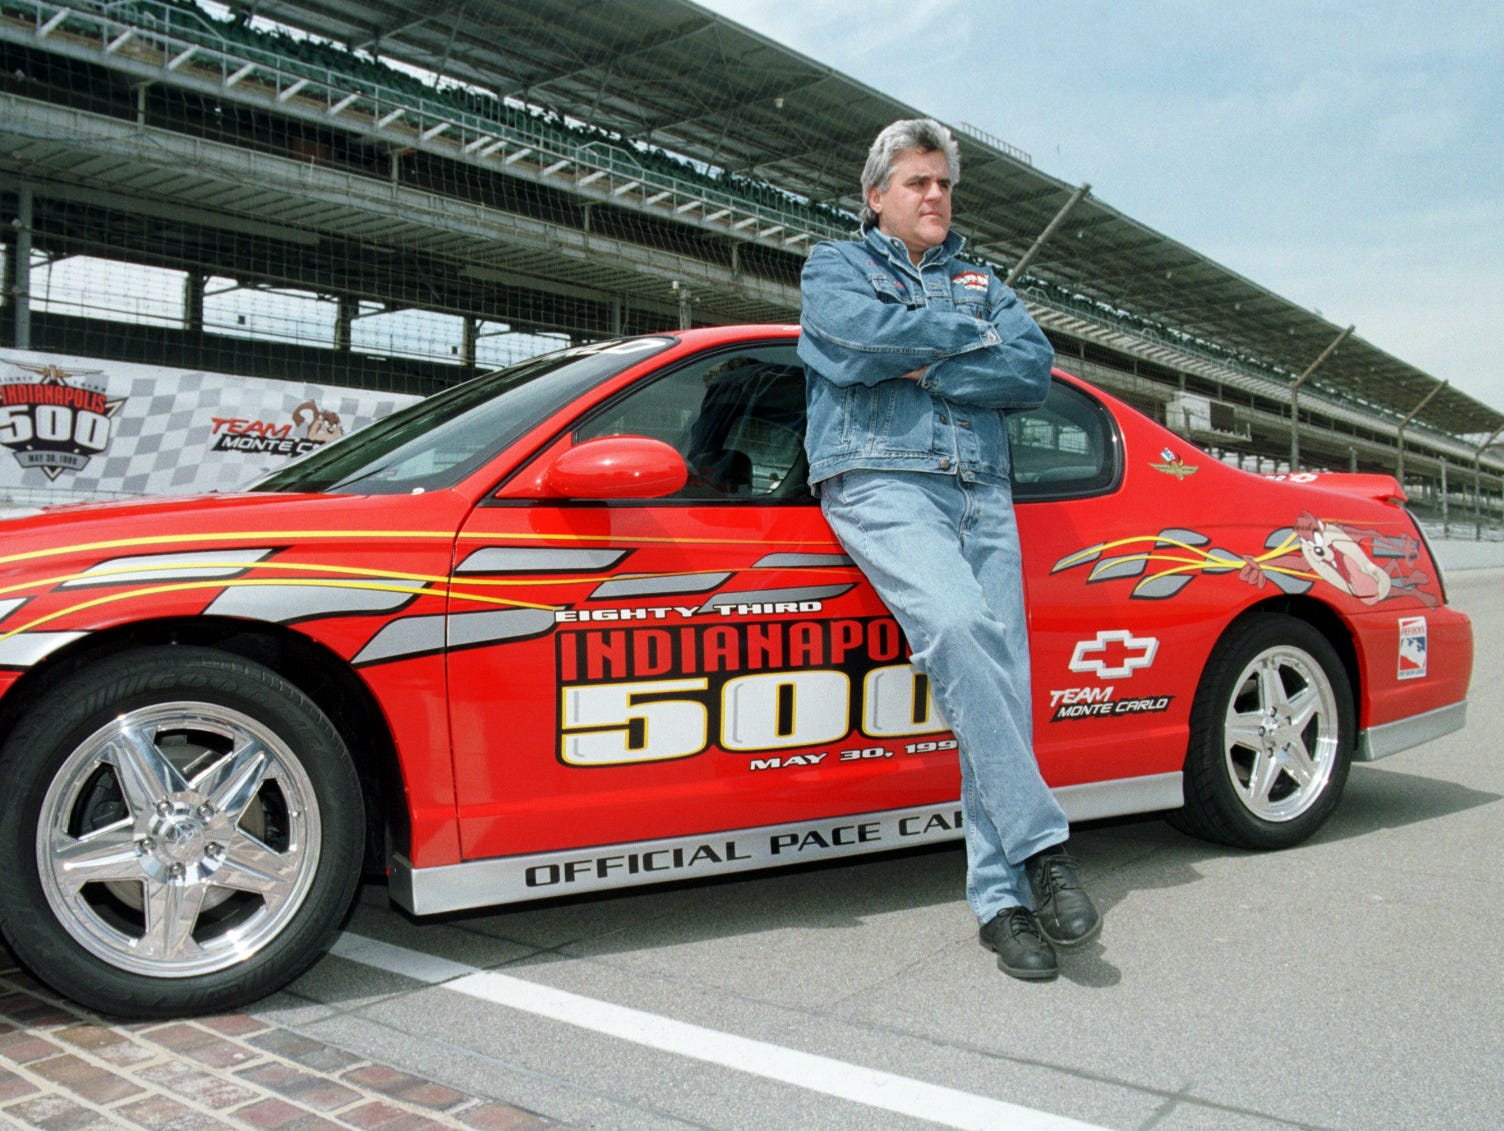 Comedian Jay Leno rests against the 2000 Monte Carlo pace car Tuesday he will drive this May in the 1999 Indianapolis 500 Mile race.